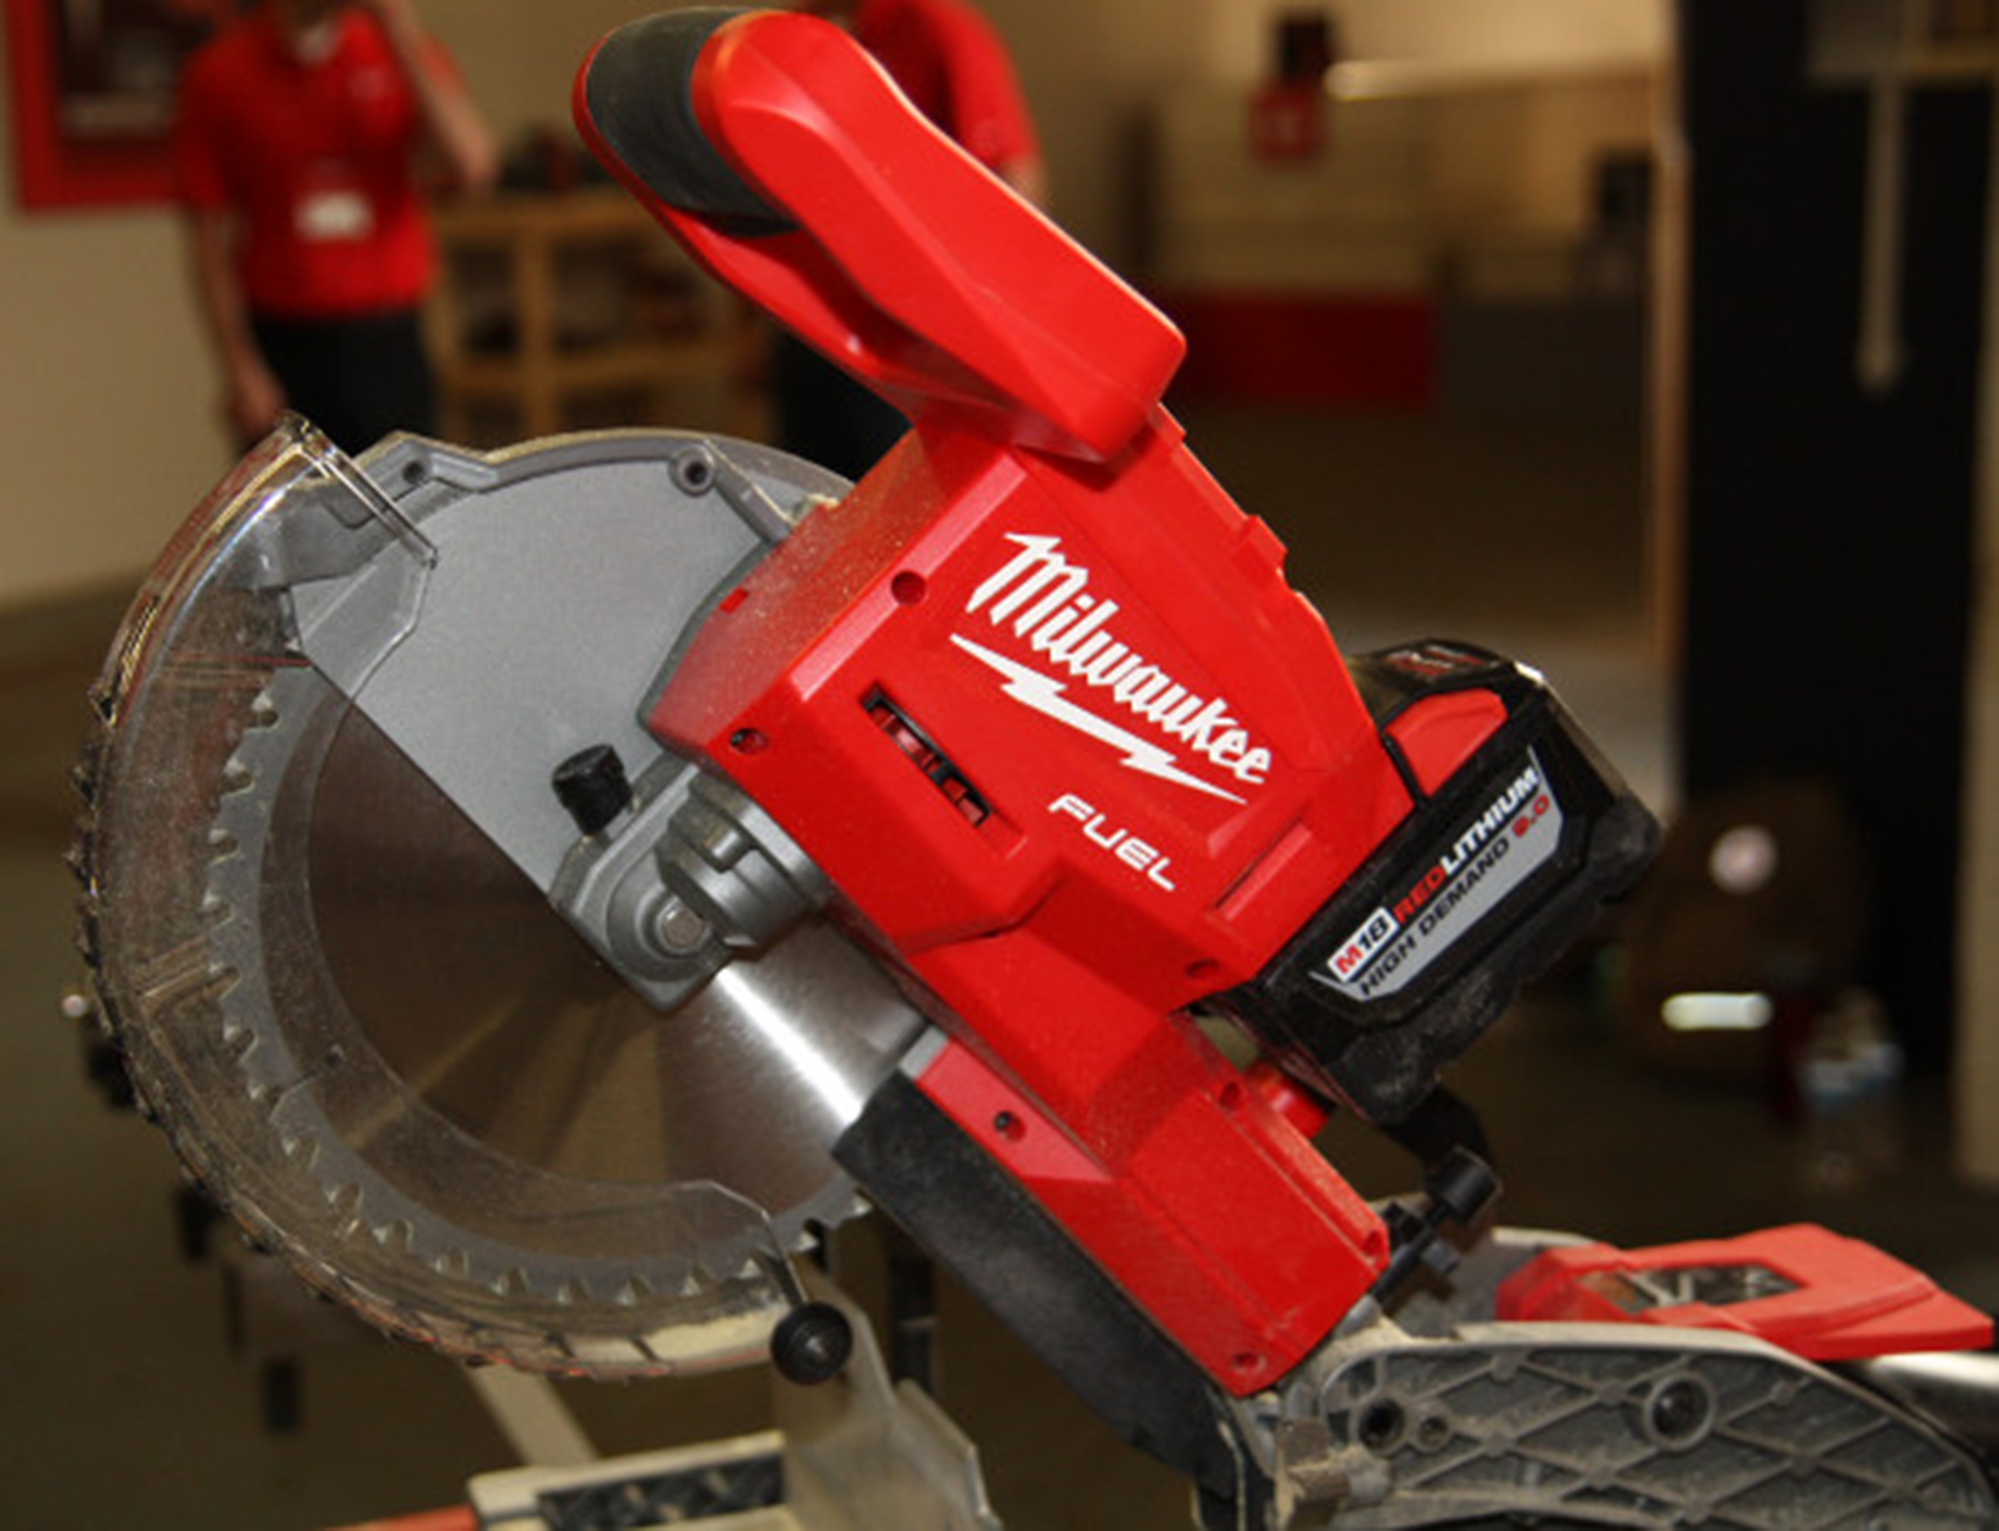 The World S First Cordless 10 Inch Sliding Compound Miter Saw Tools